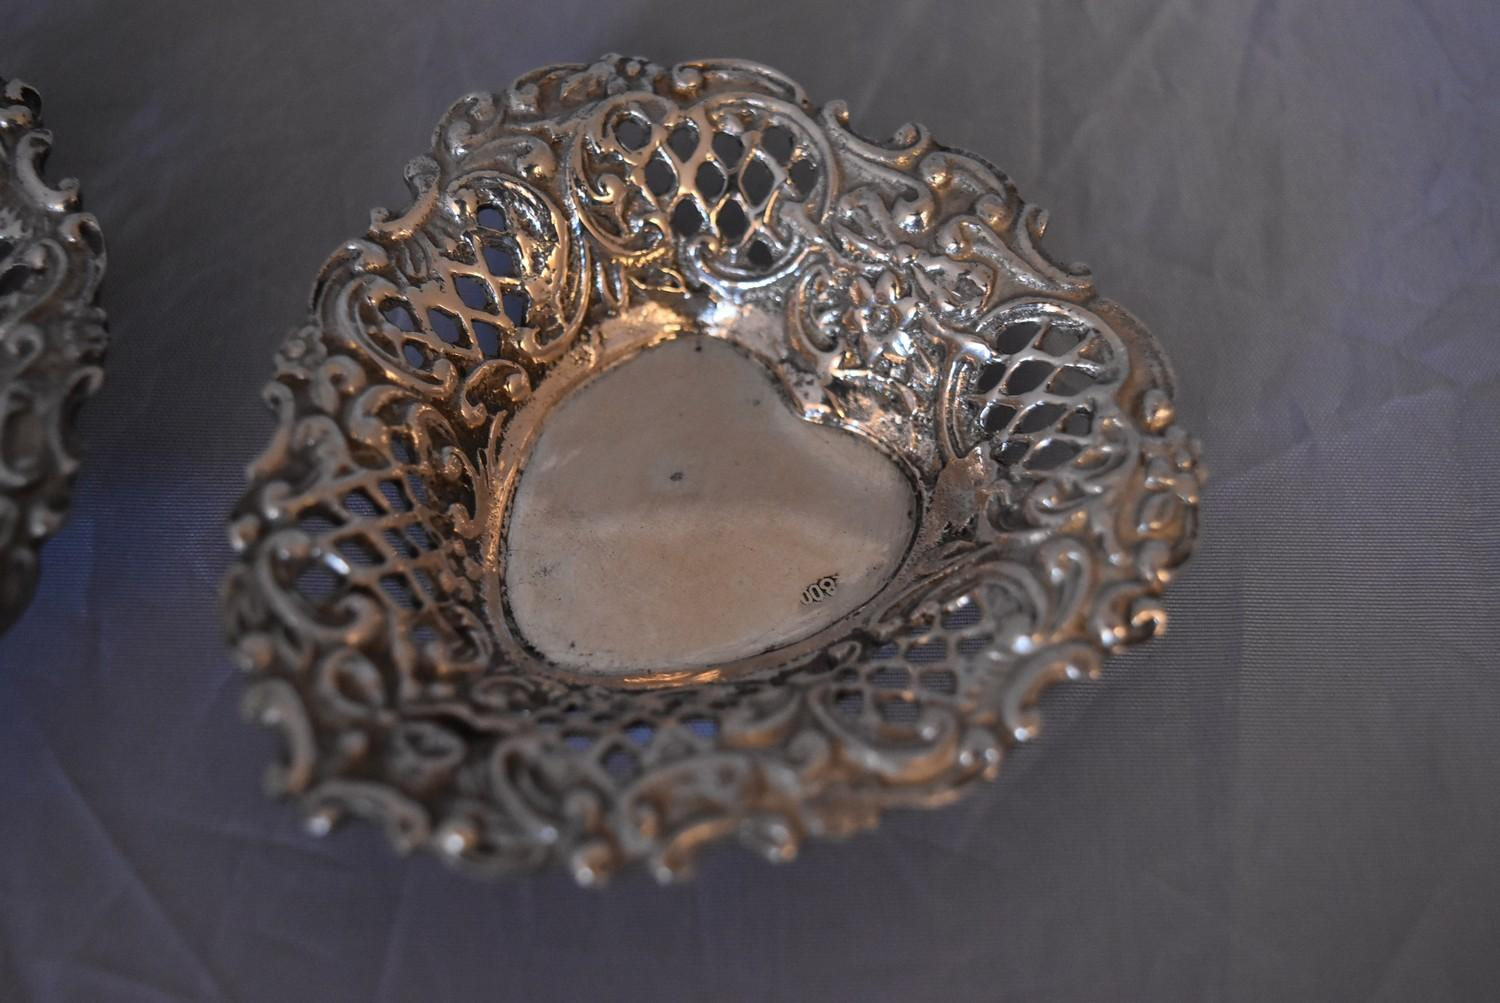 A pair of Continental pierced silver heart shaped bon bon dishes, marked 800. (97g) - Image 2 of 5